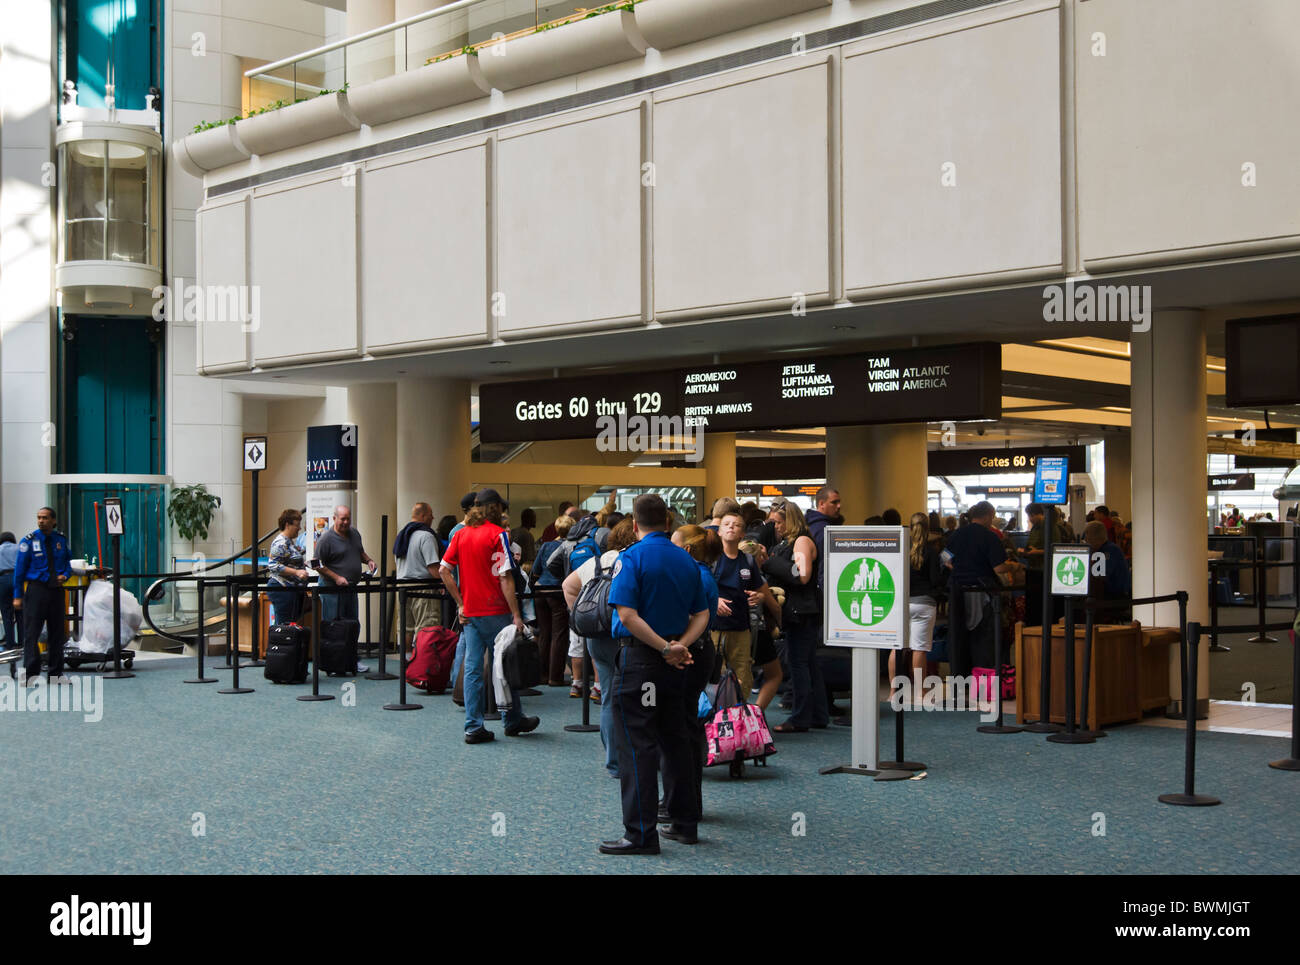 Entrance to the security checkpoint at Orlando International Airport, Florida, USA - Stock Image